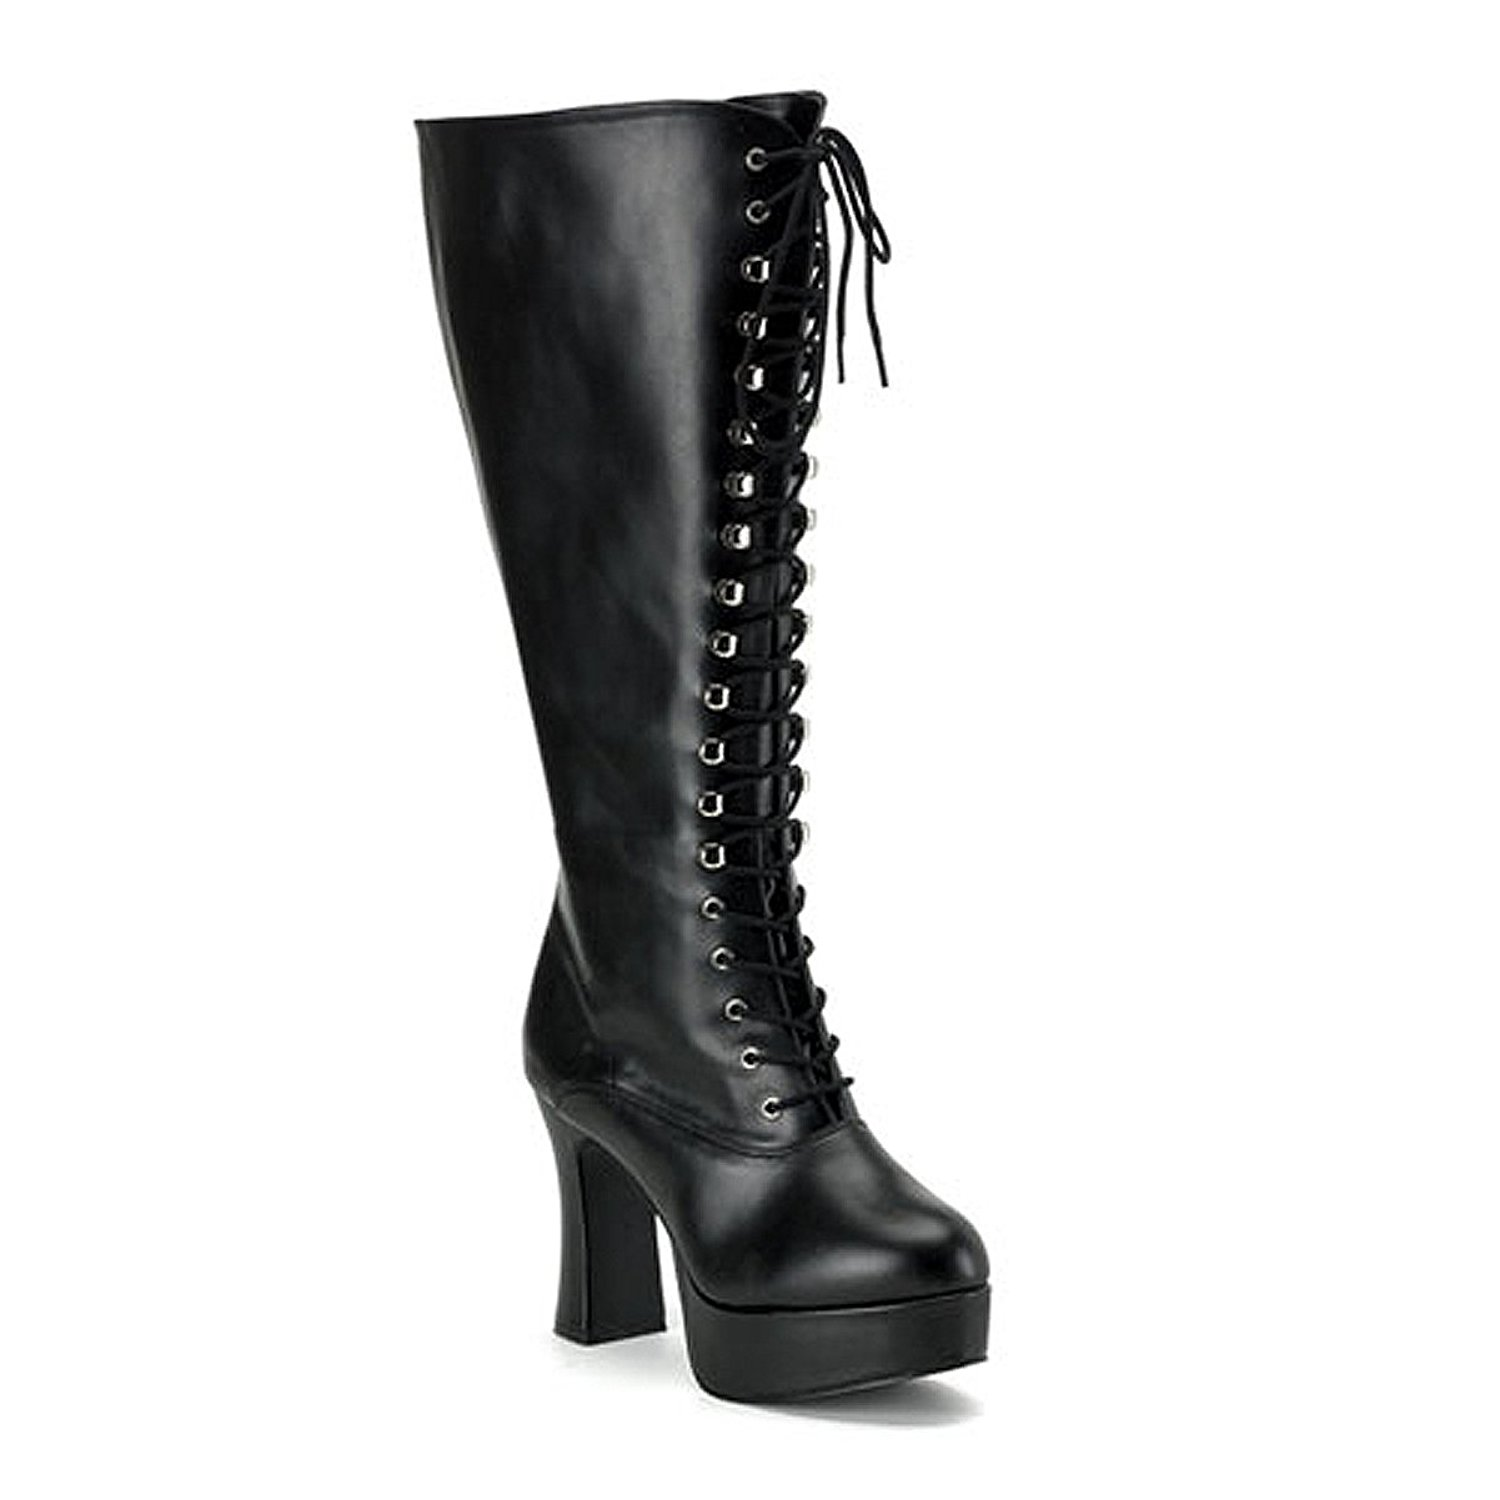 c24ff0982d912 Get Quotations · Womens PLUS SIZE 4 Inch Sexy WIDE WIDTH WIDE CALF Platform Knee  High Boot Black